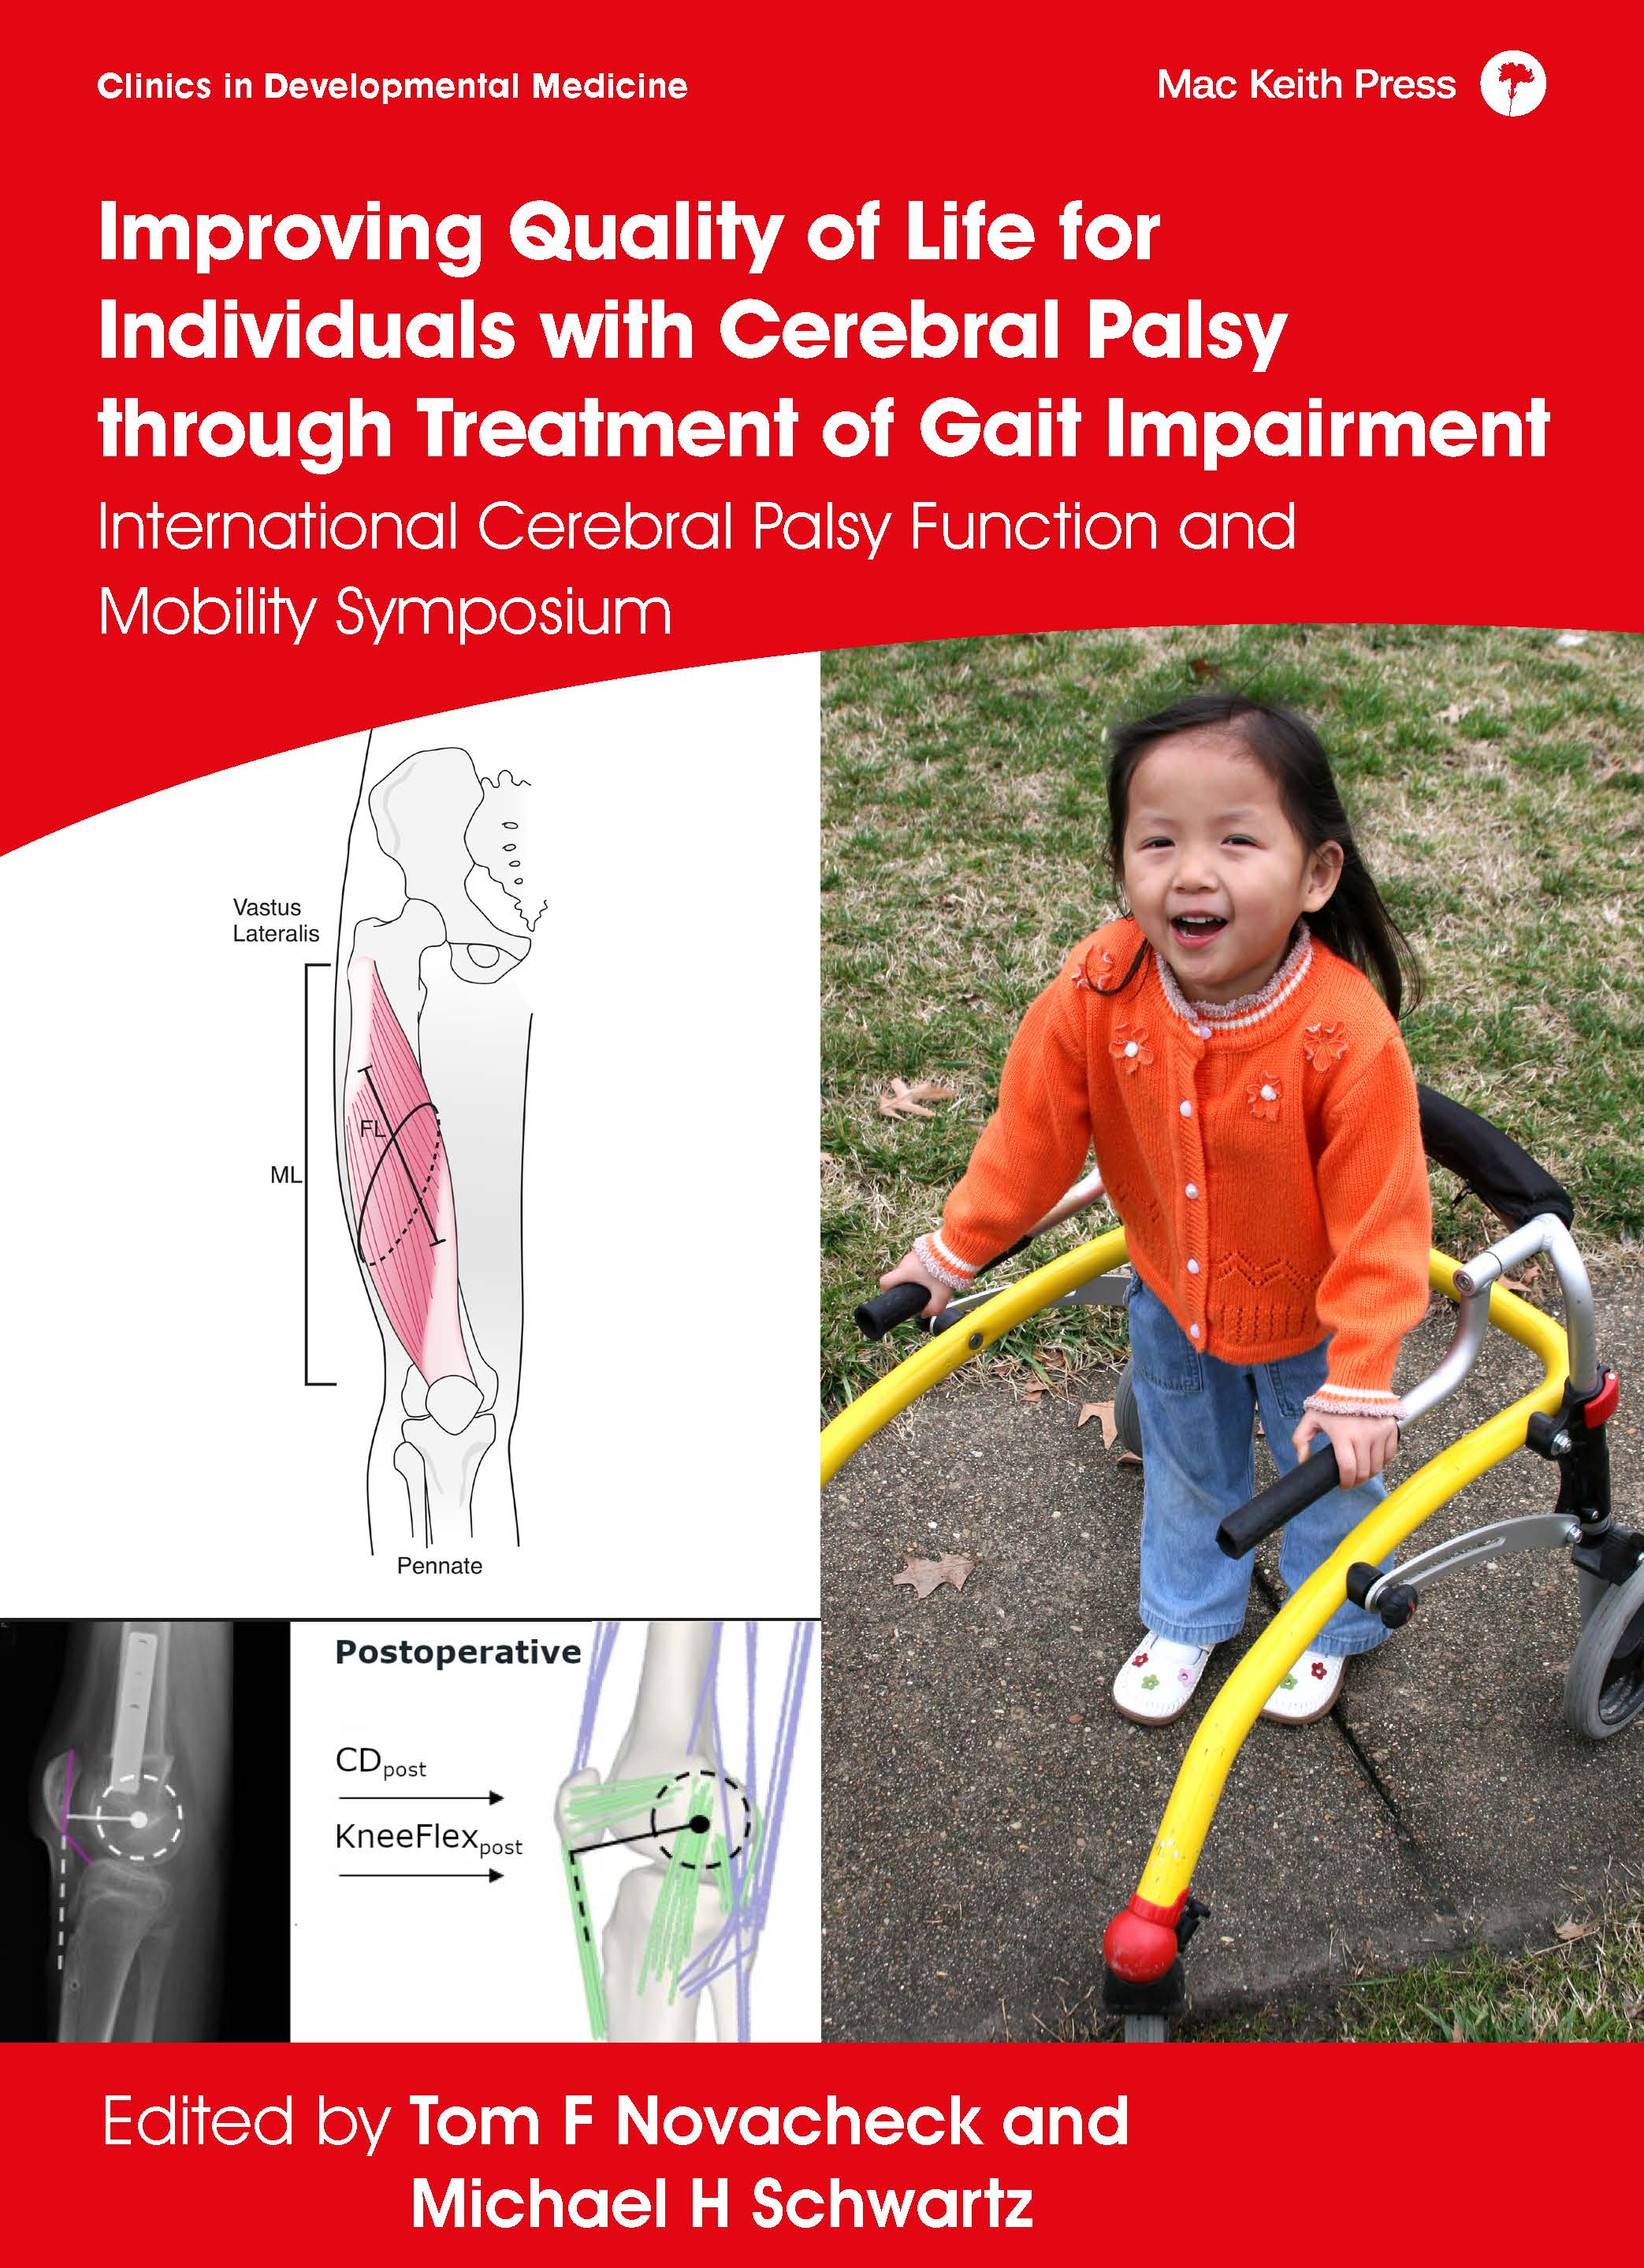 Improving Quality of Life for Individuals with Cerebral Palsy through Treatment of Gait Impairment, Novacheck & Schwartz